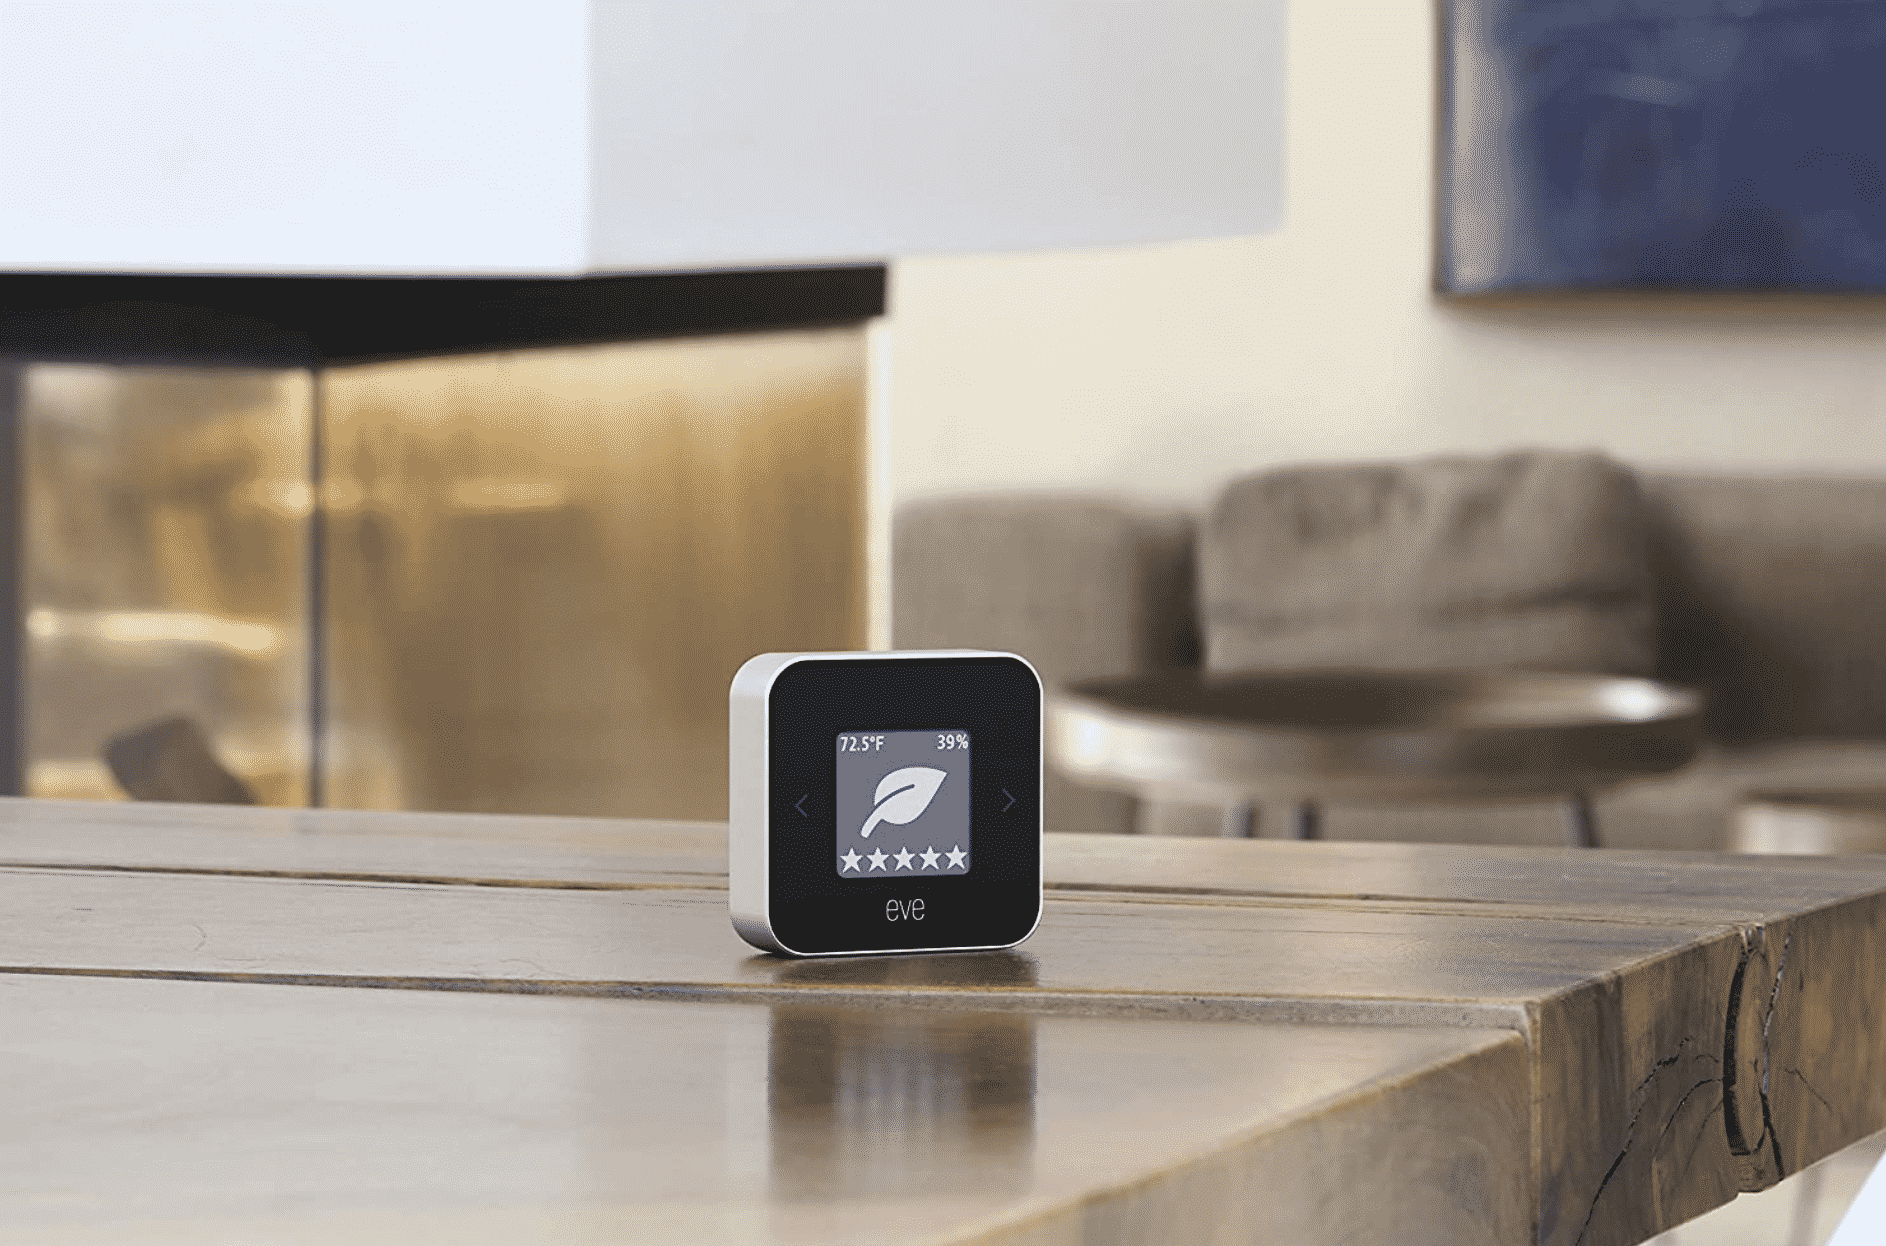 Get this Premium Air Quality Monitoring Device at $10 Off Today